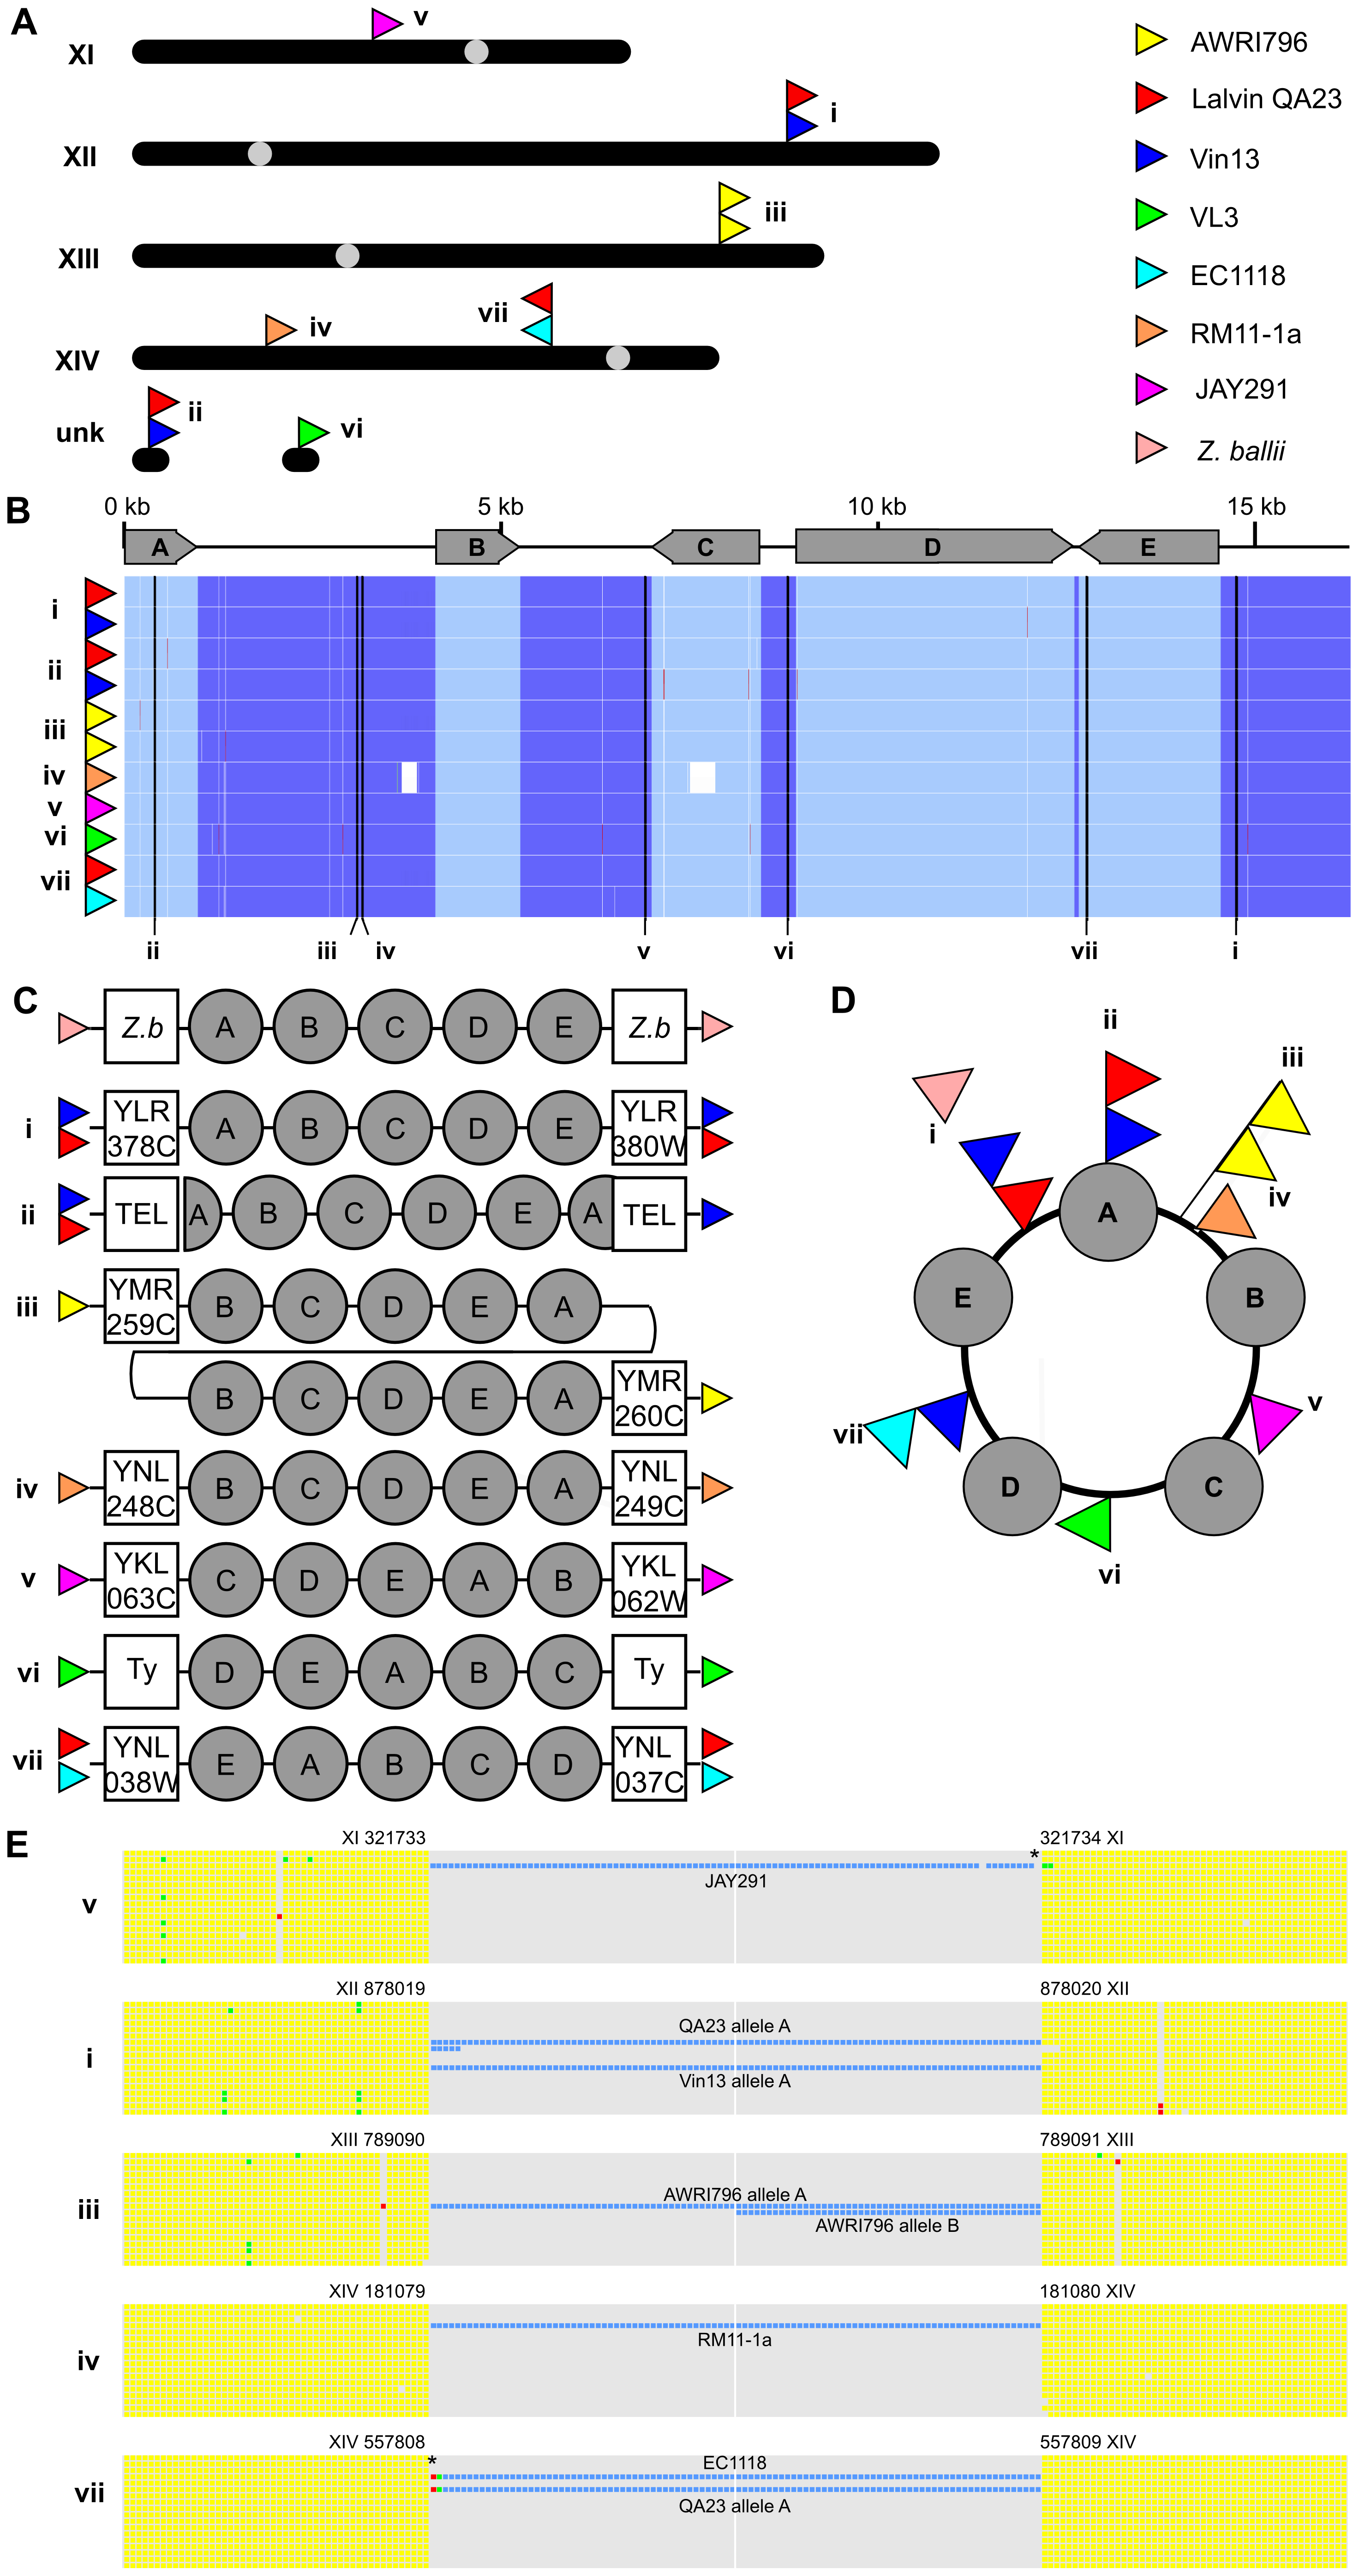 A divergent cluster of genes with a possible circular intermediate.